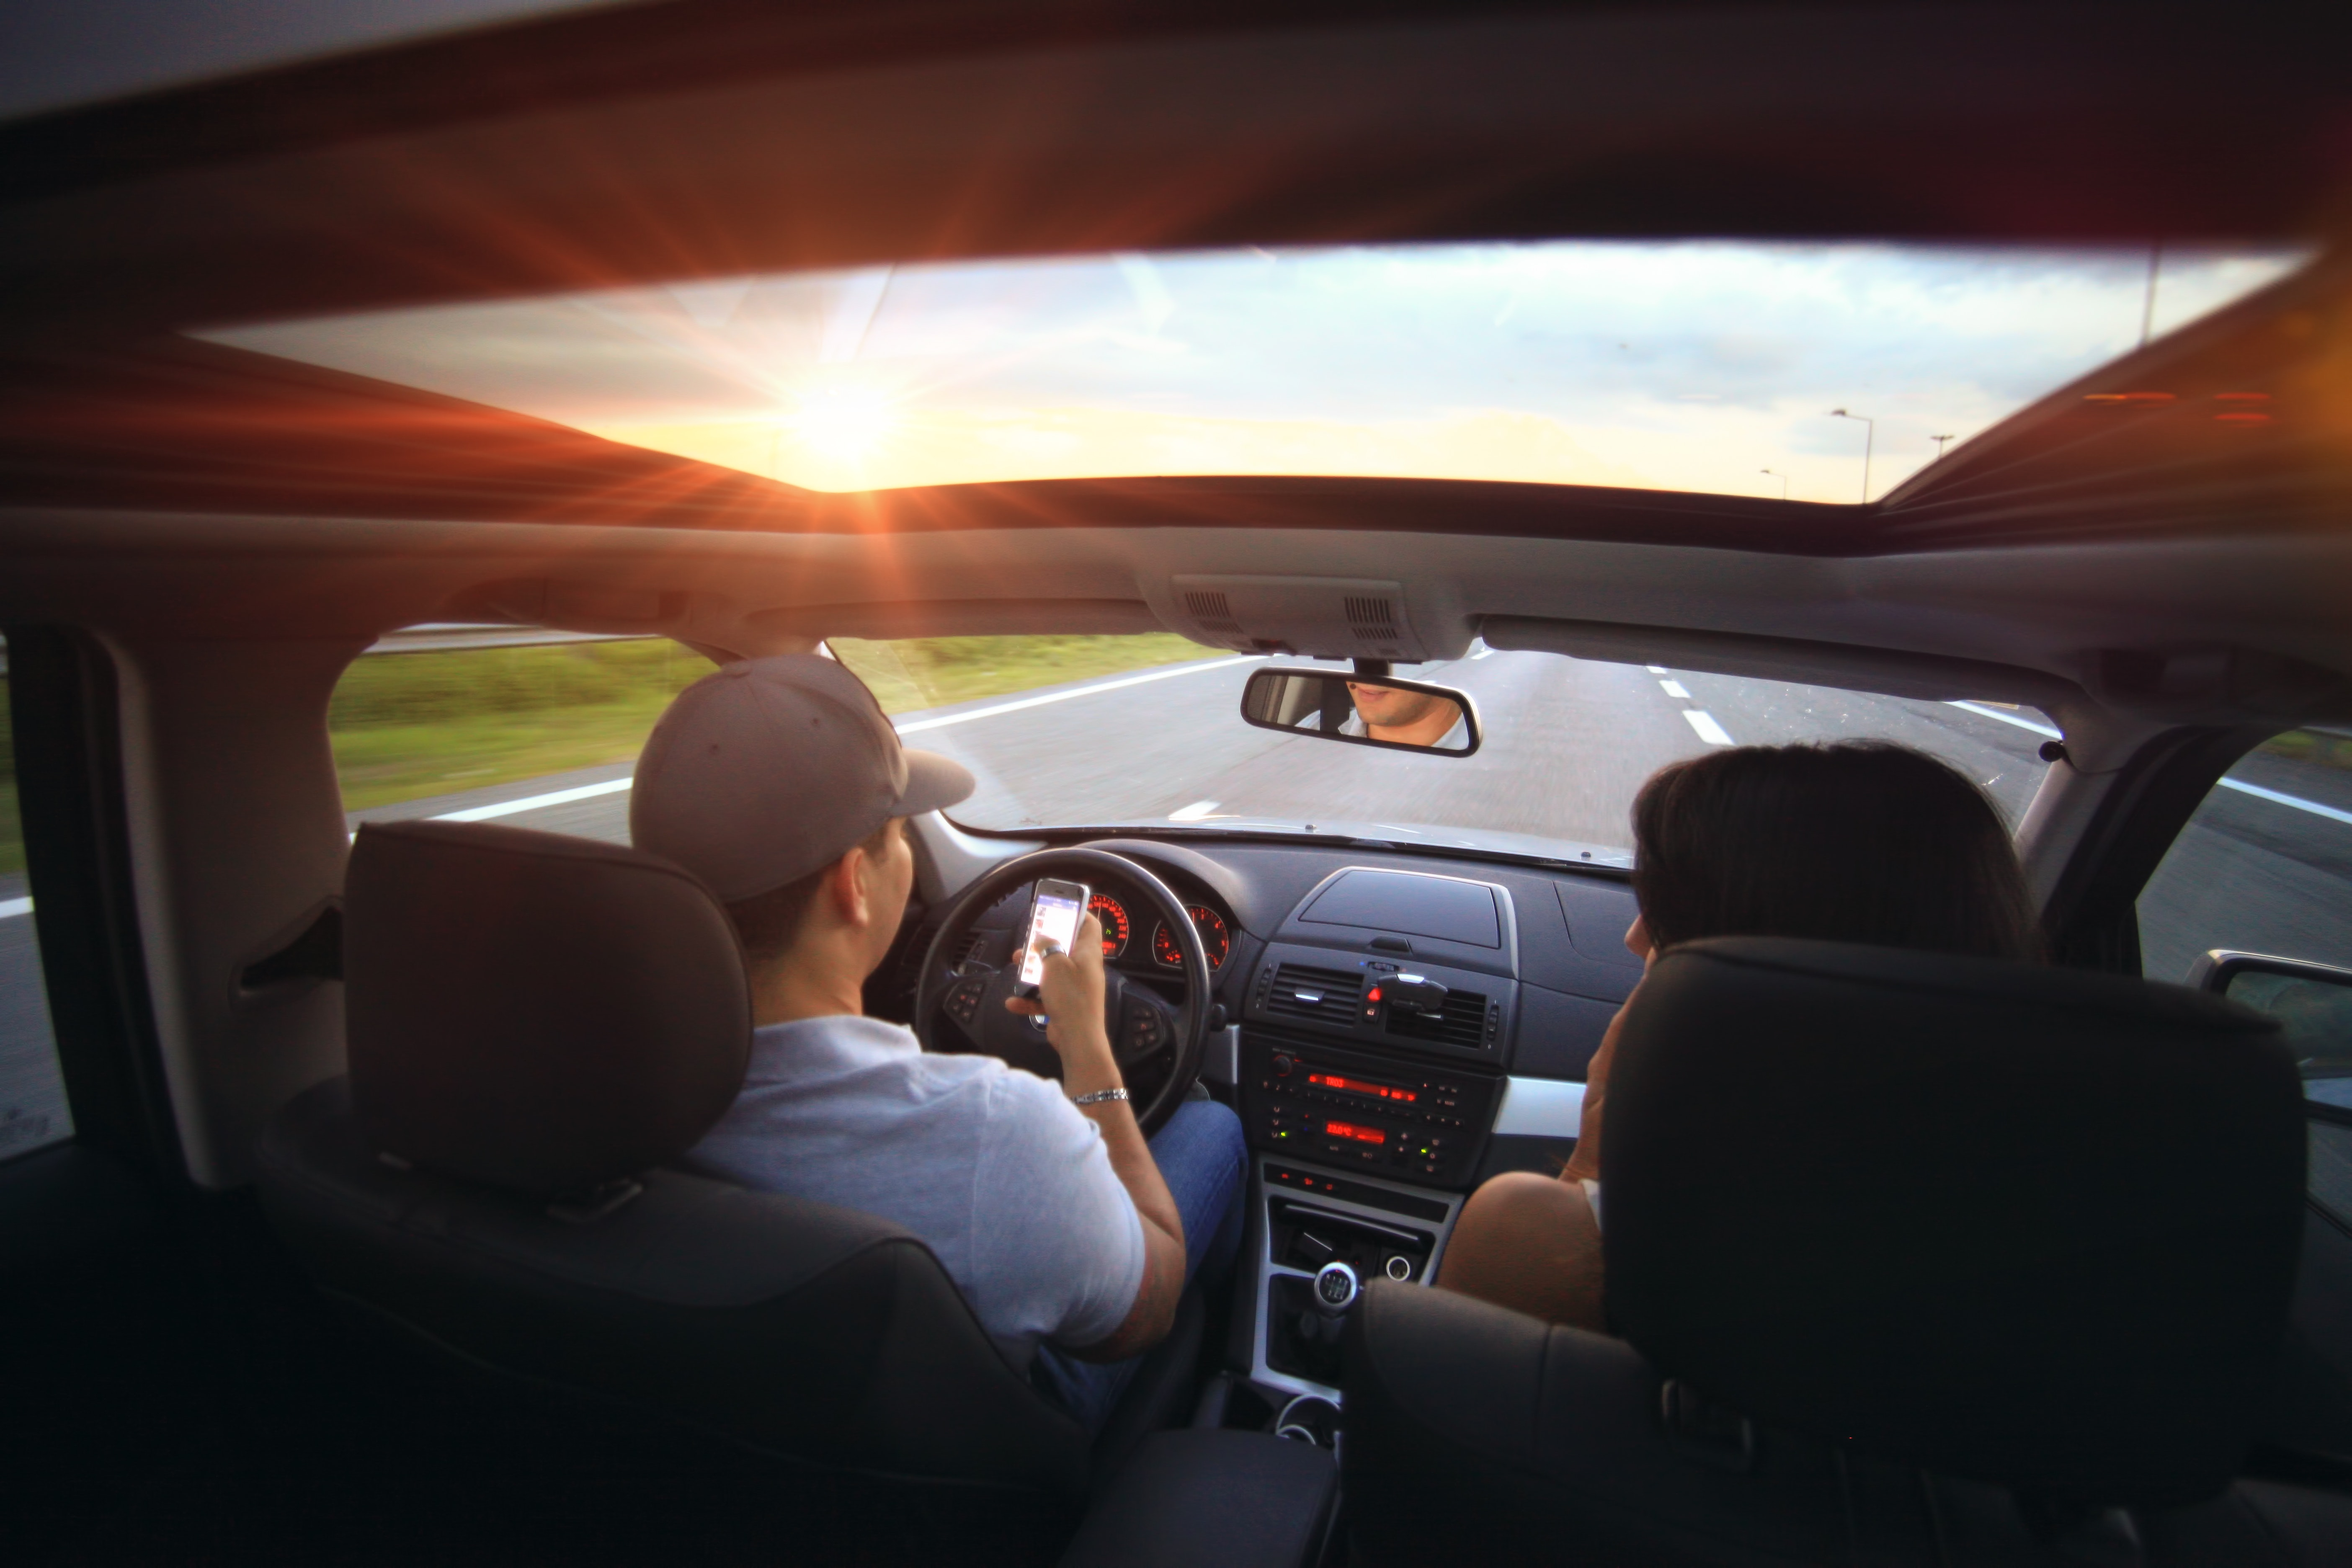 How to Stop Yourself from Driving Distracted